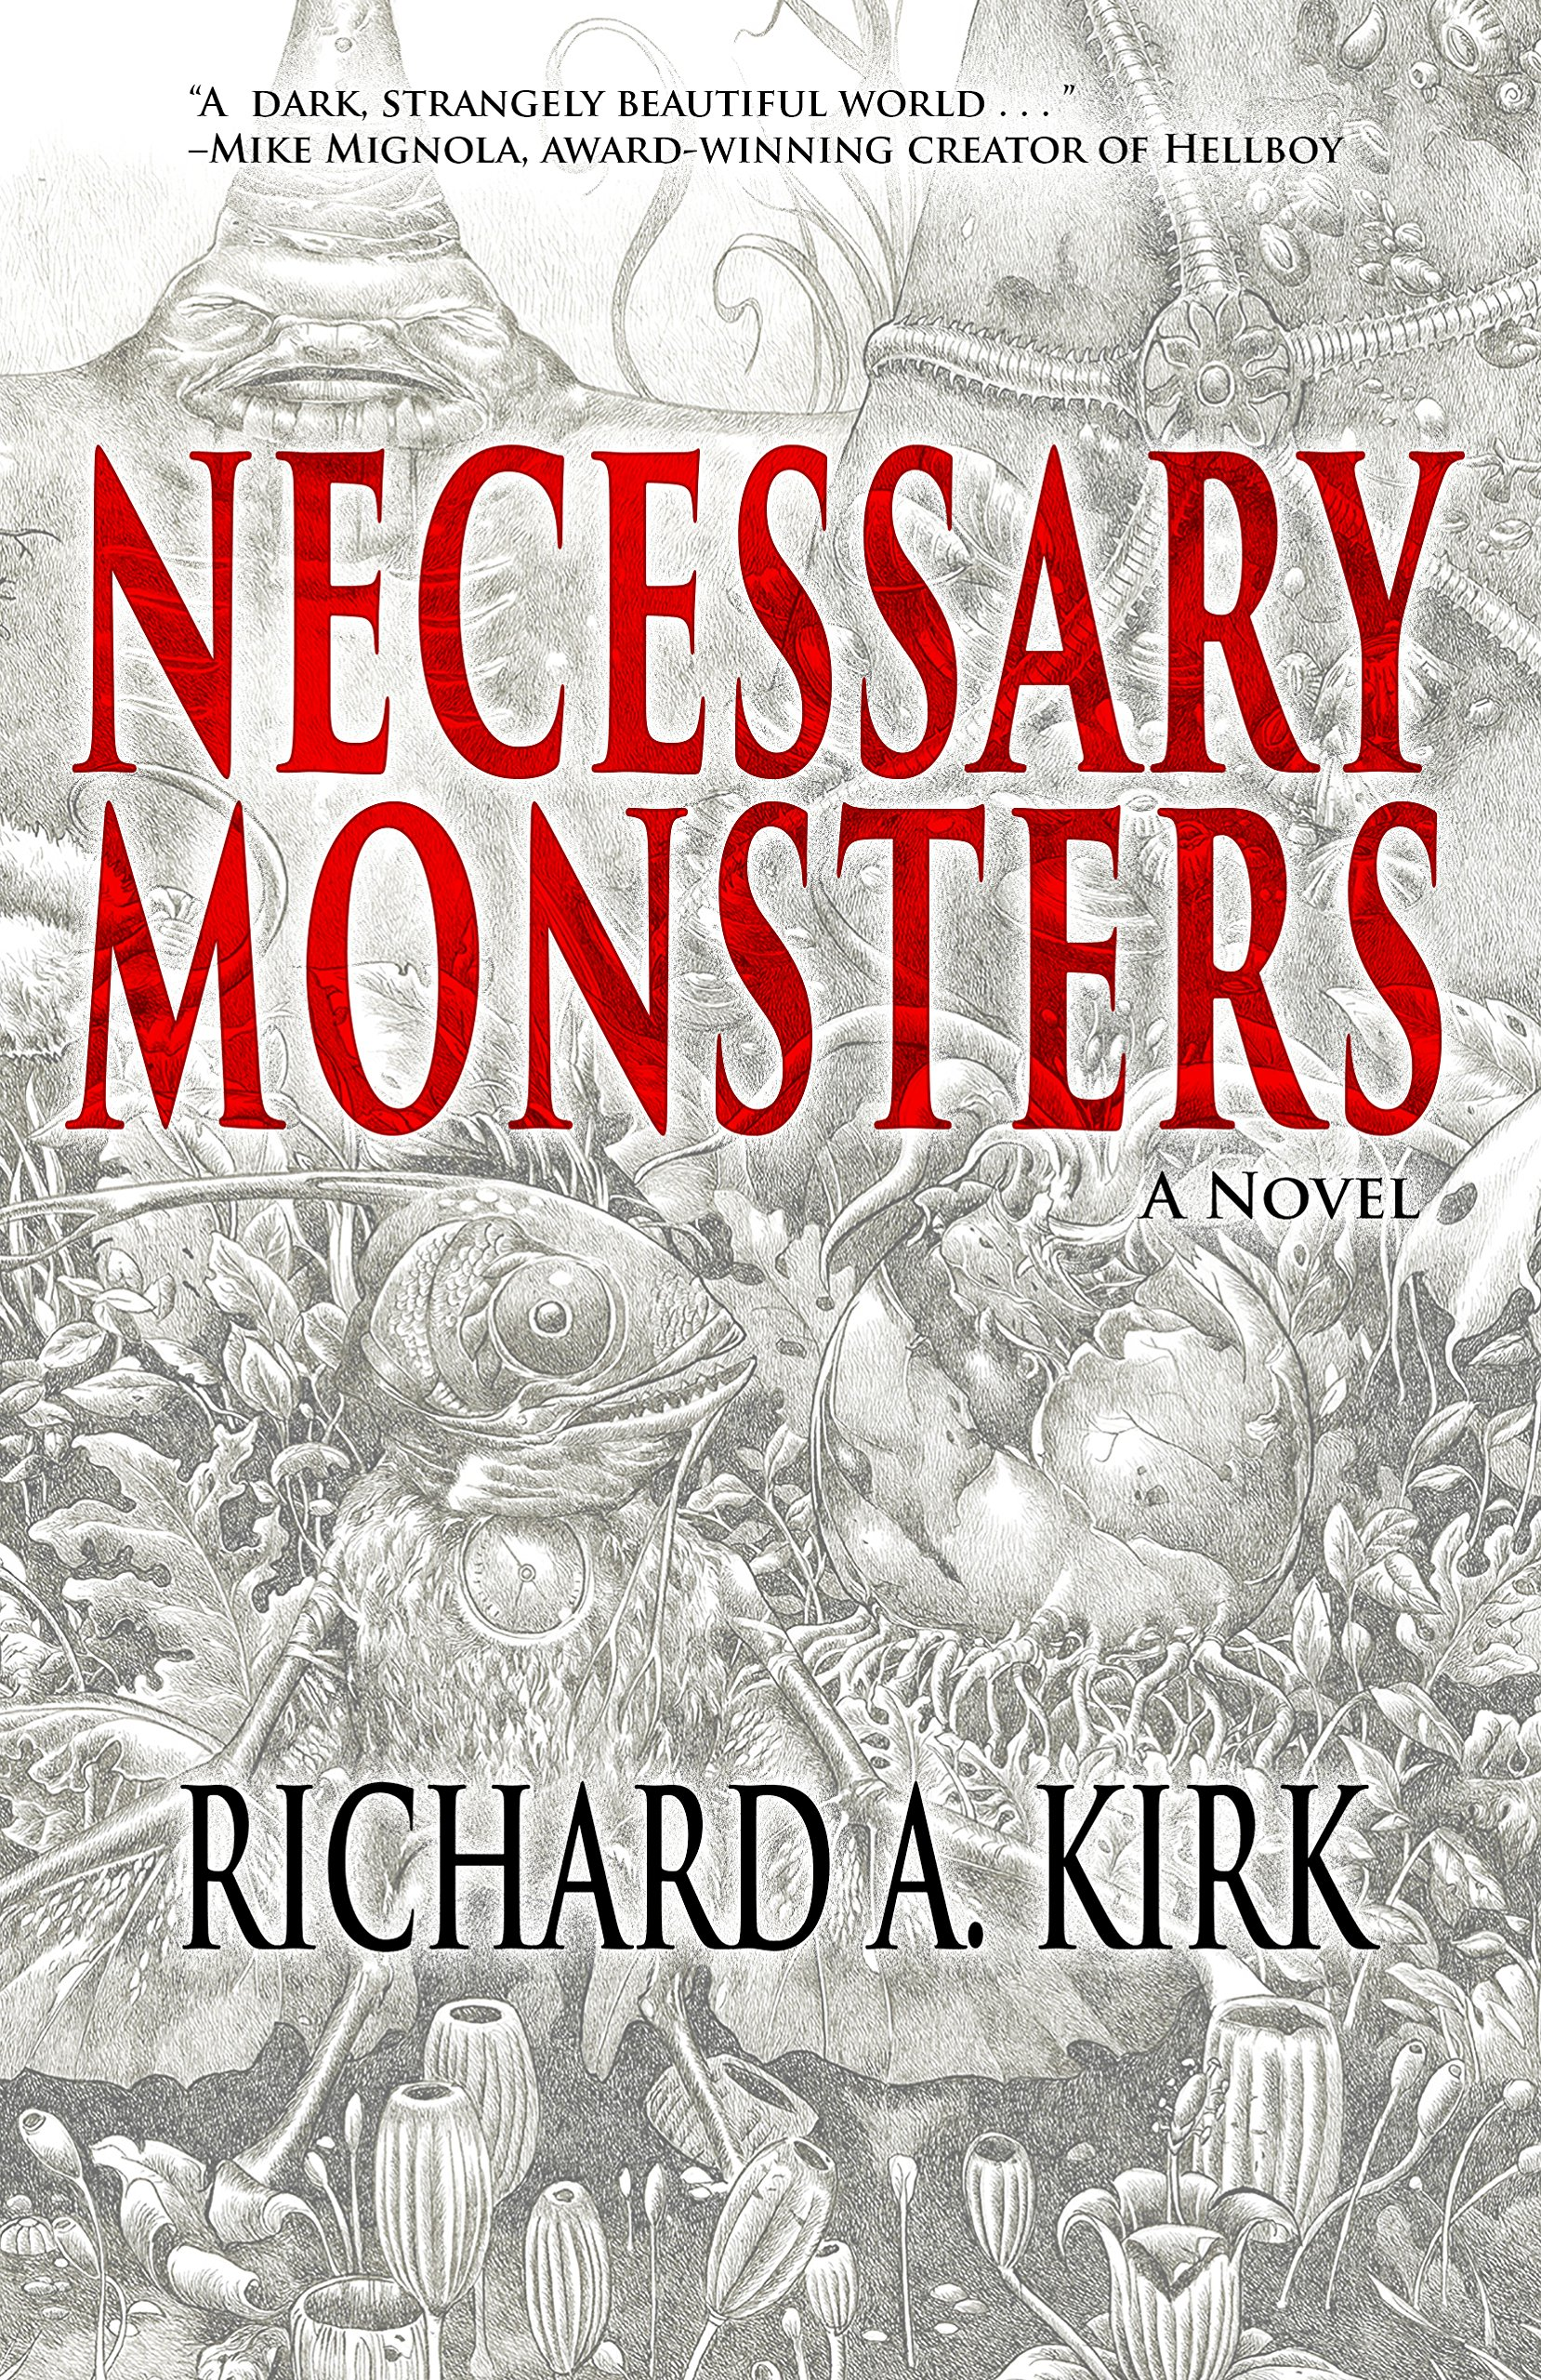 Necessary Monsters Paperback – May 16, 2017 by Richard A. Kirk (Author)